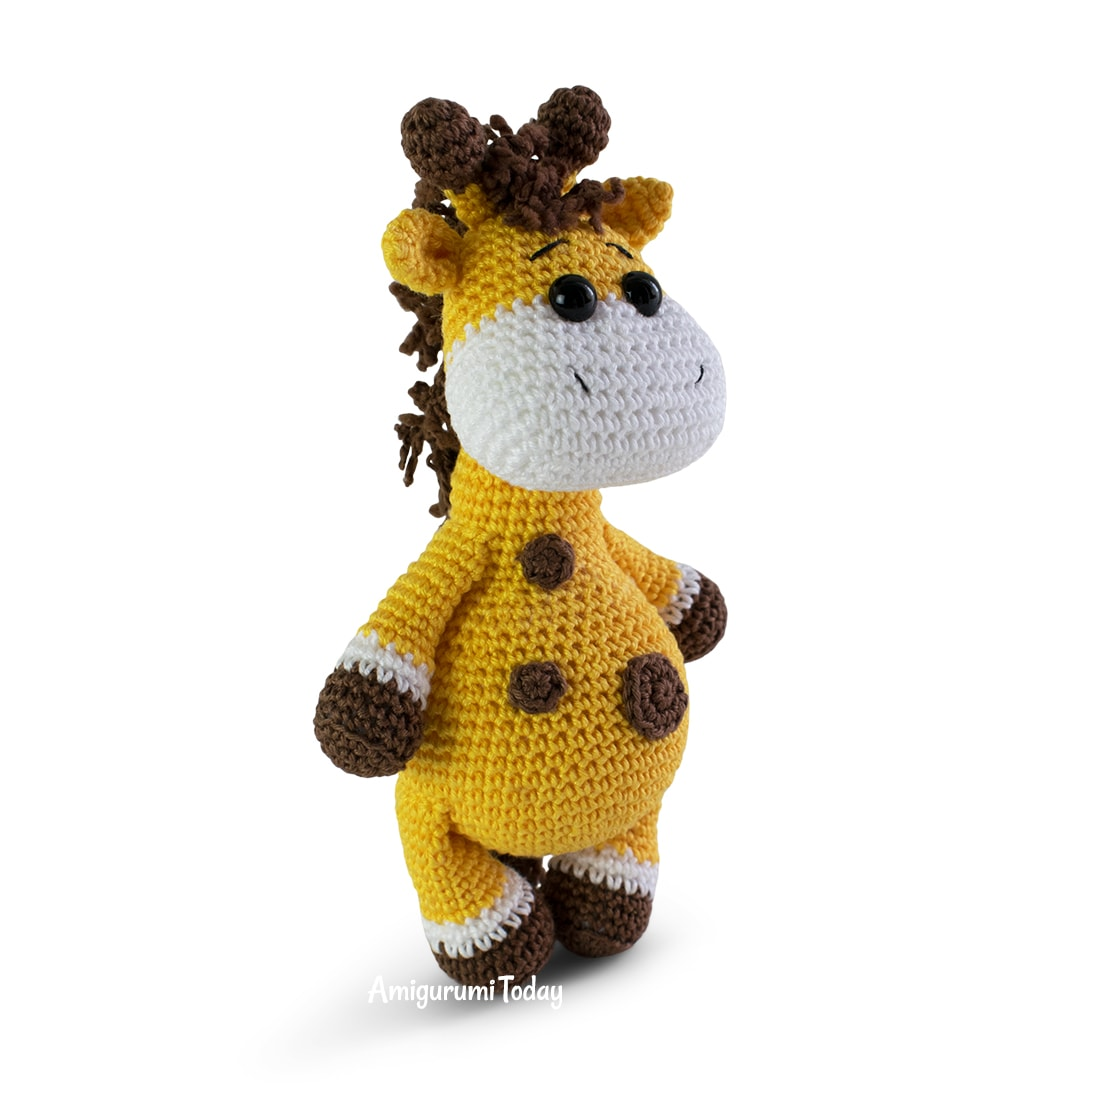 Free giraffe crochet pattern by Amigurumi Today